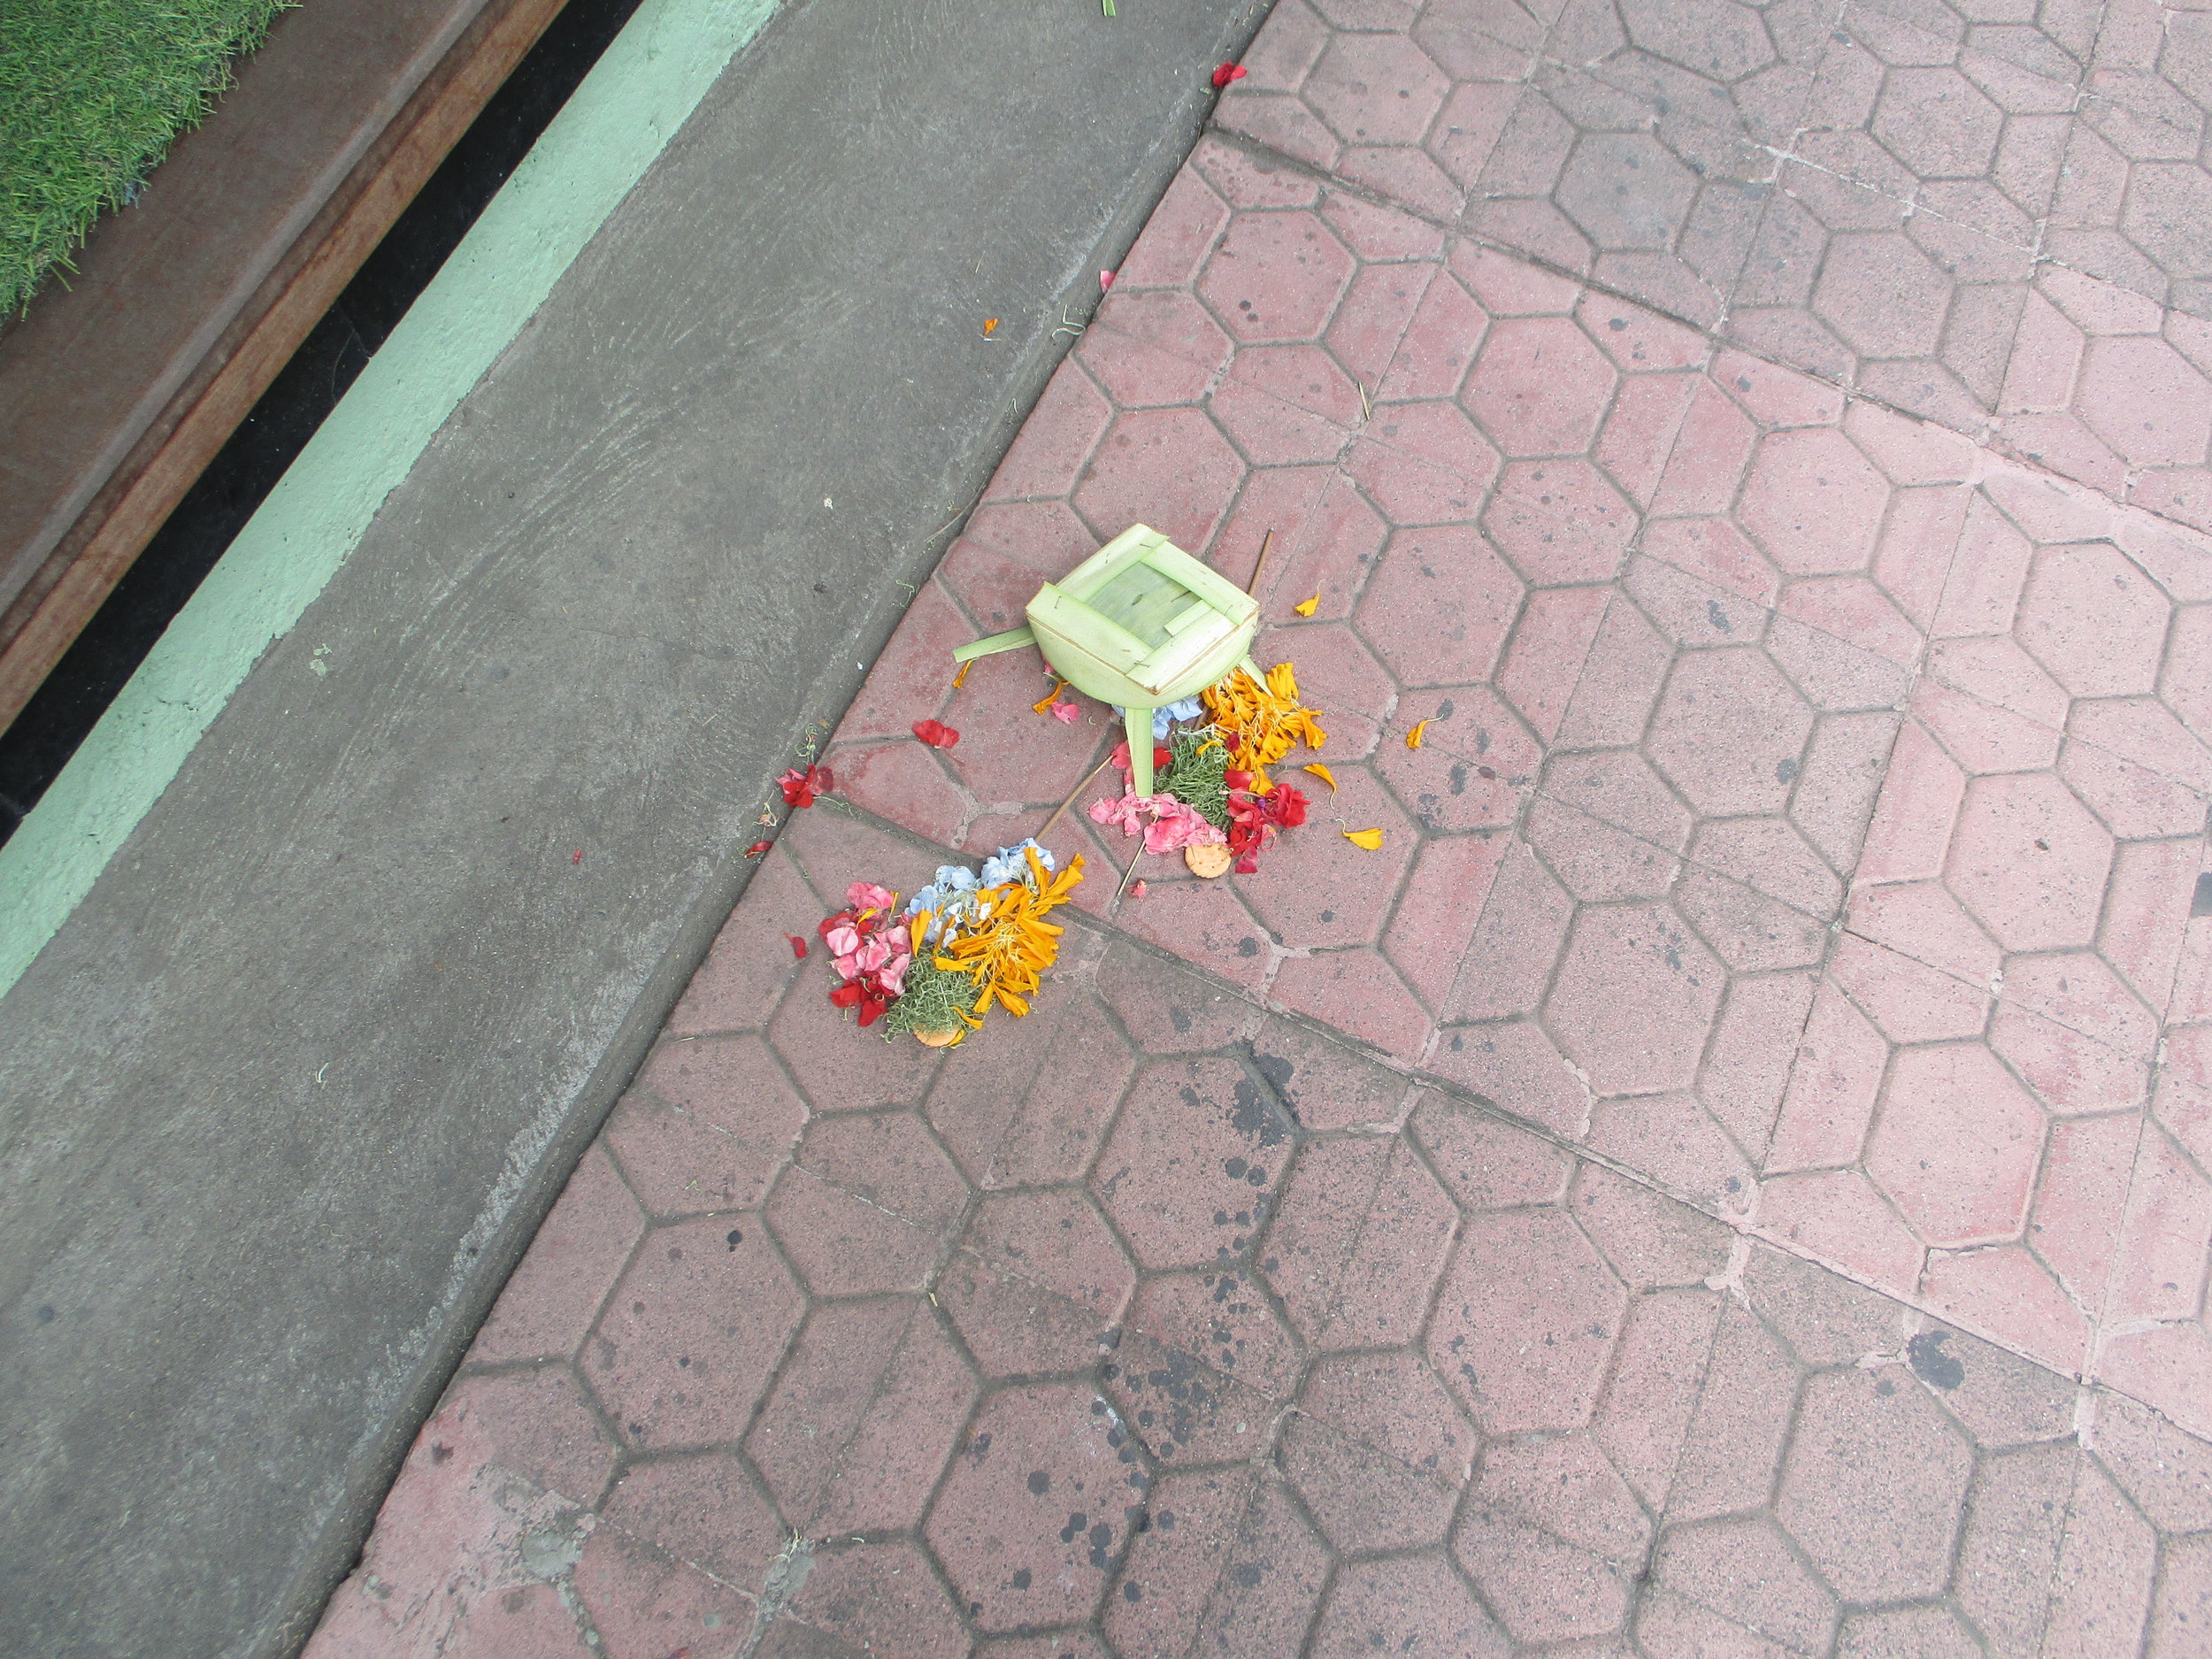 Canang (prayer offerings) on the pavement